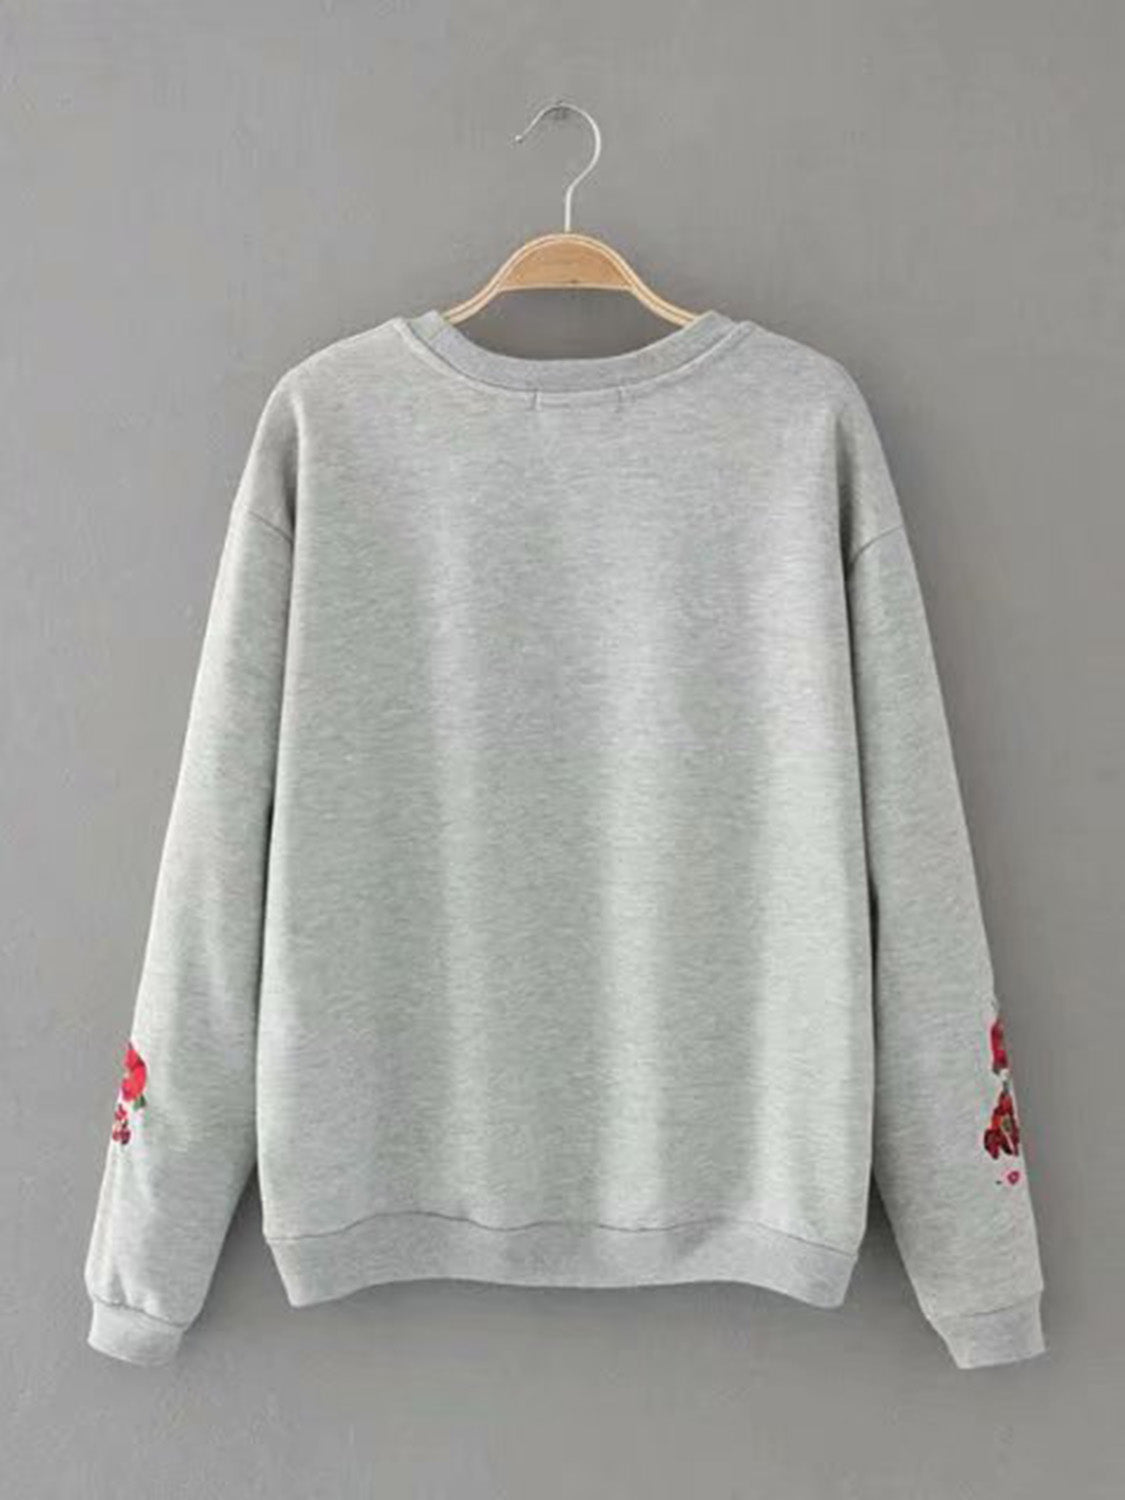 Gray Women Crop Sweatshirt Floral Embroidery Long Sleeve